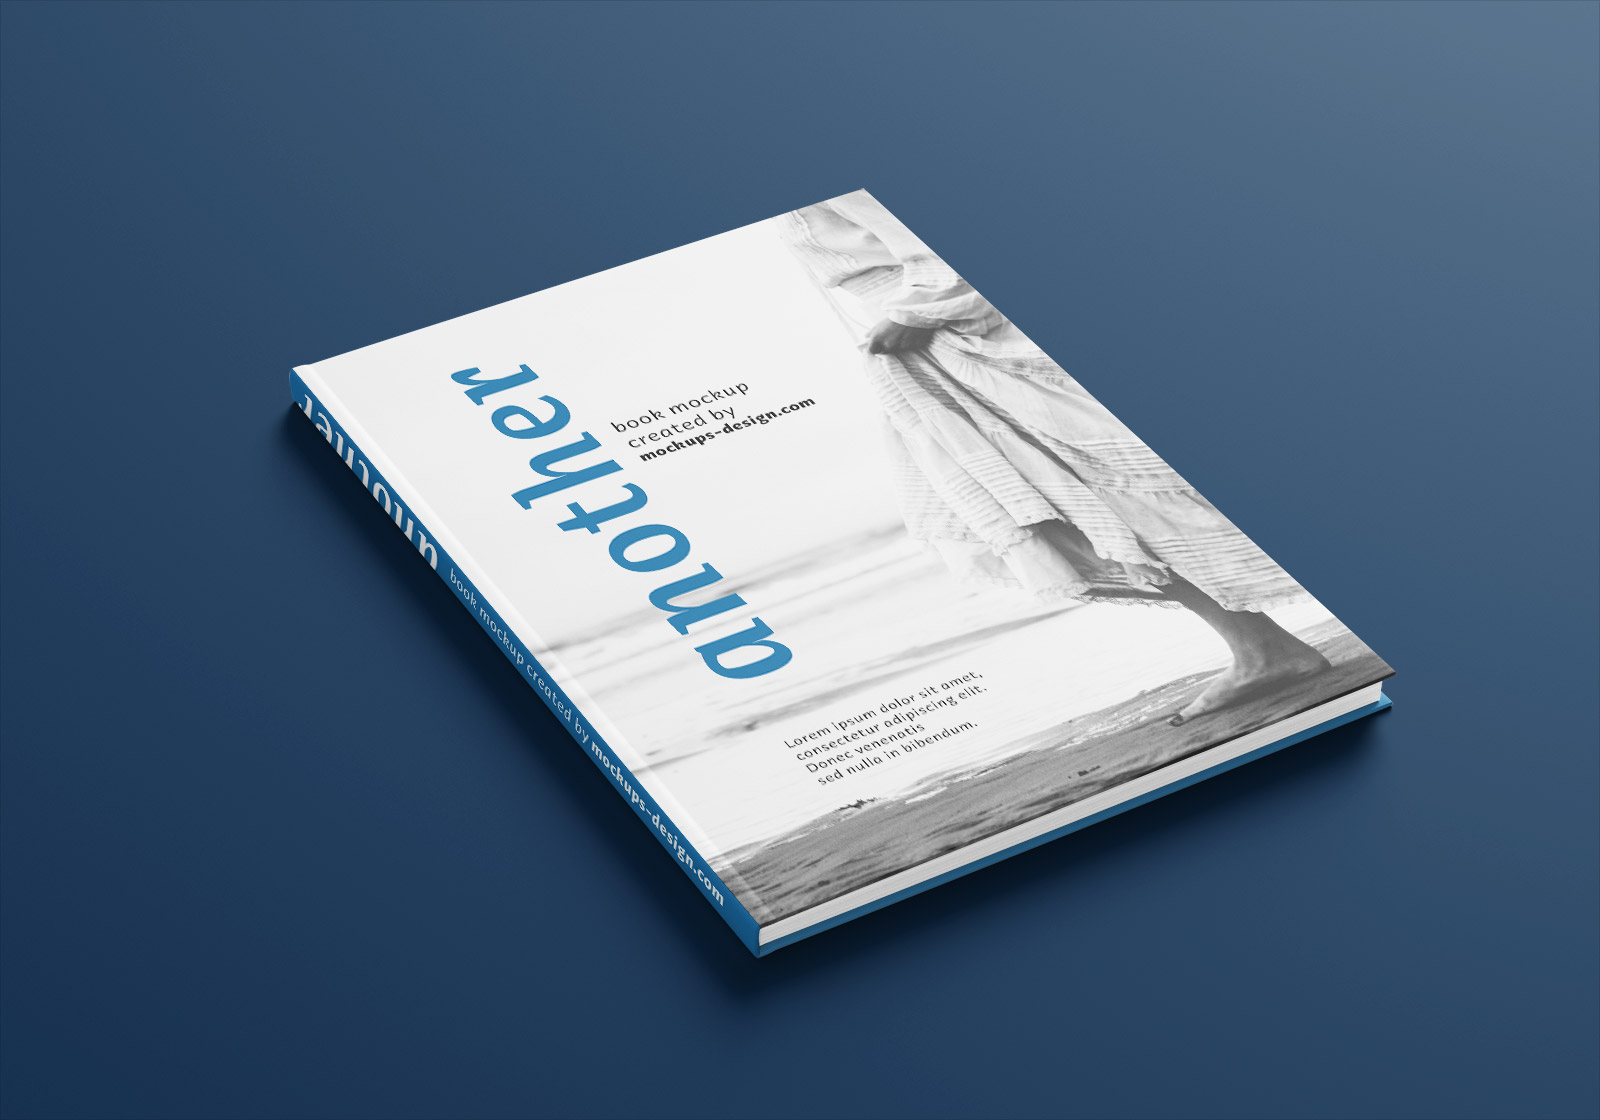 Free A4 Hardcover Magazine Book Mockup PSD Set (1)